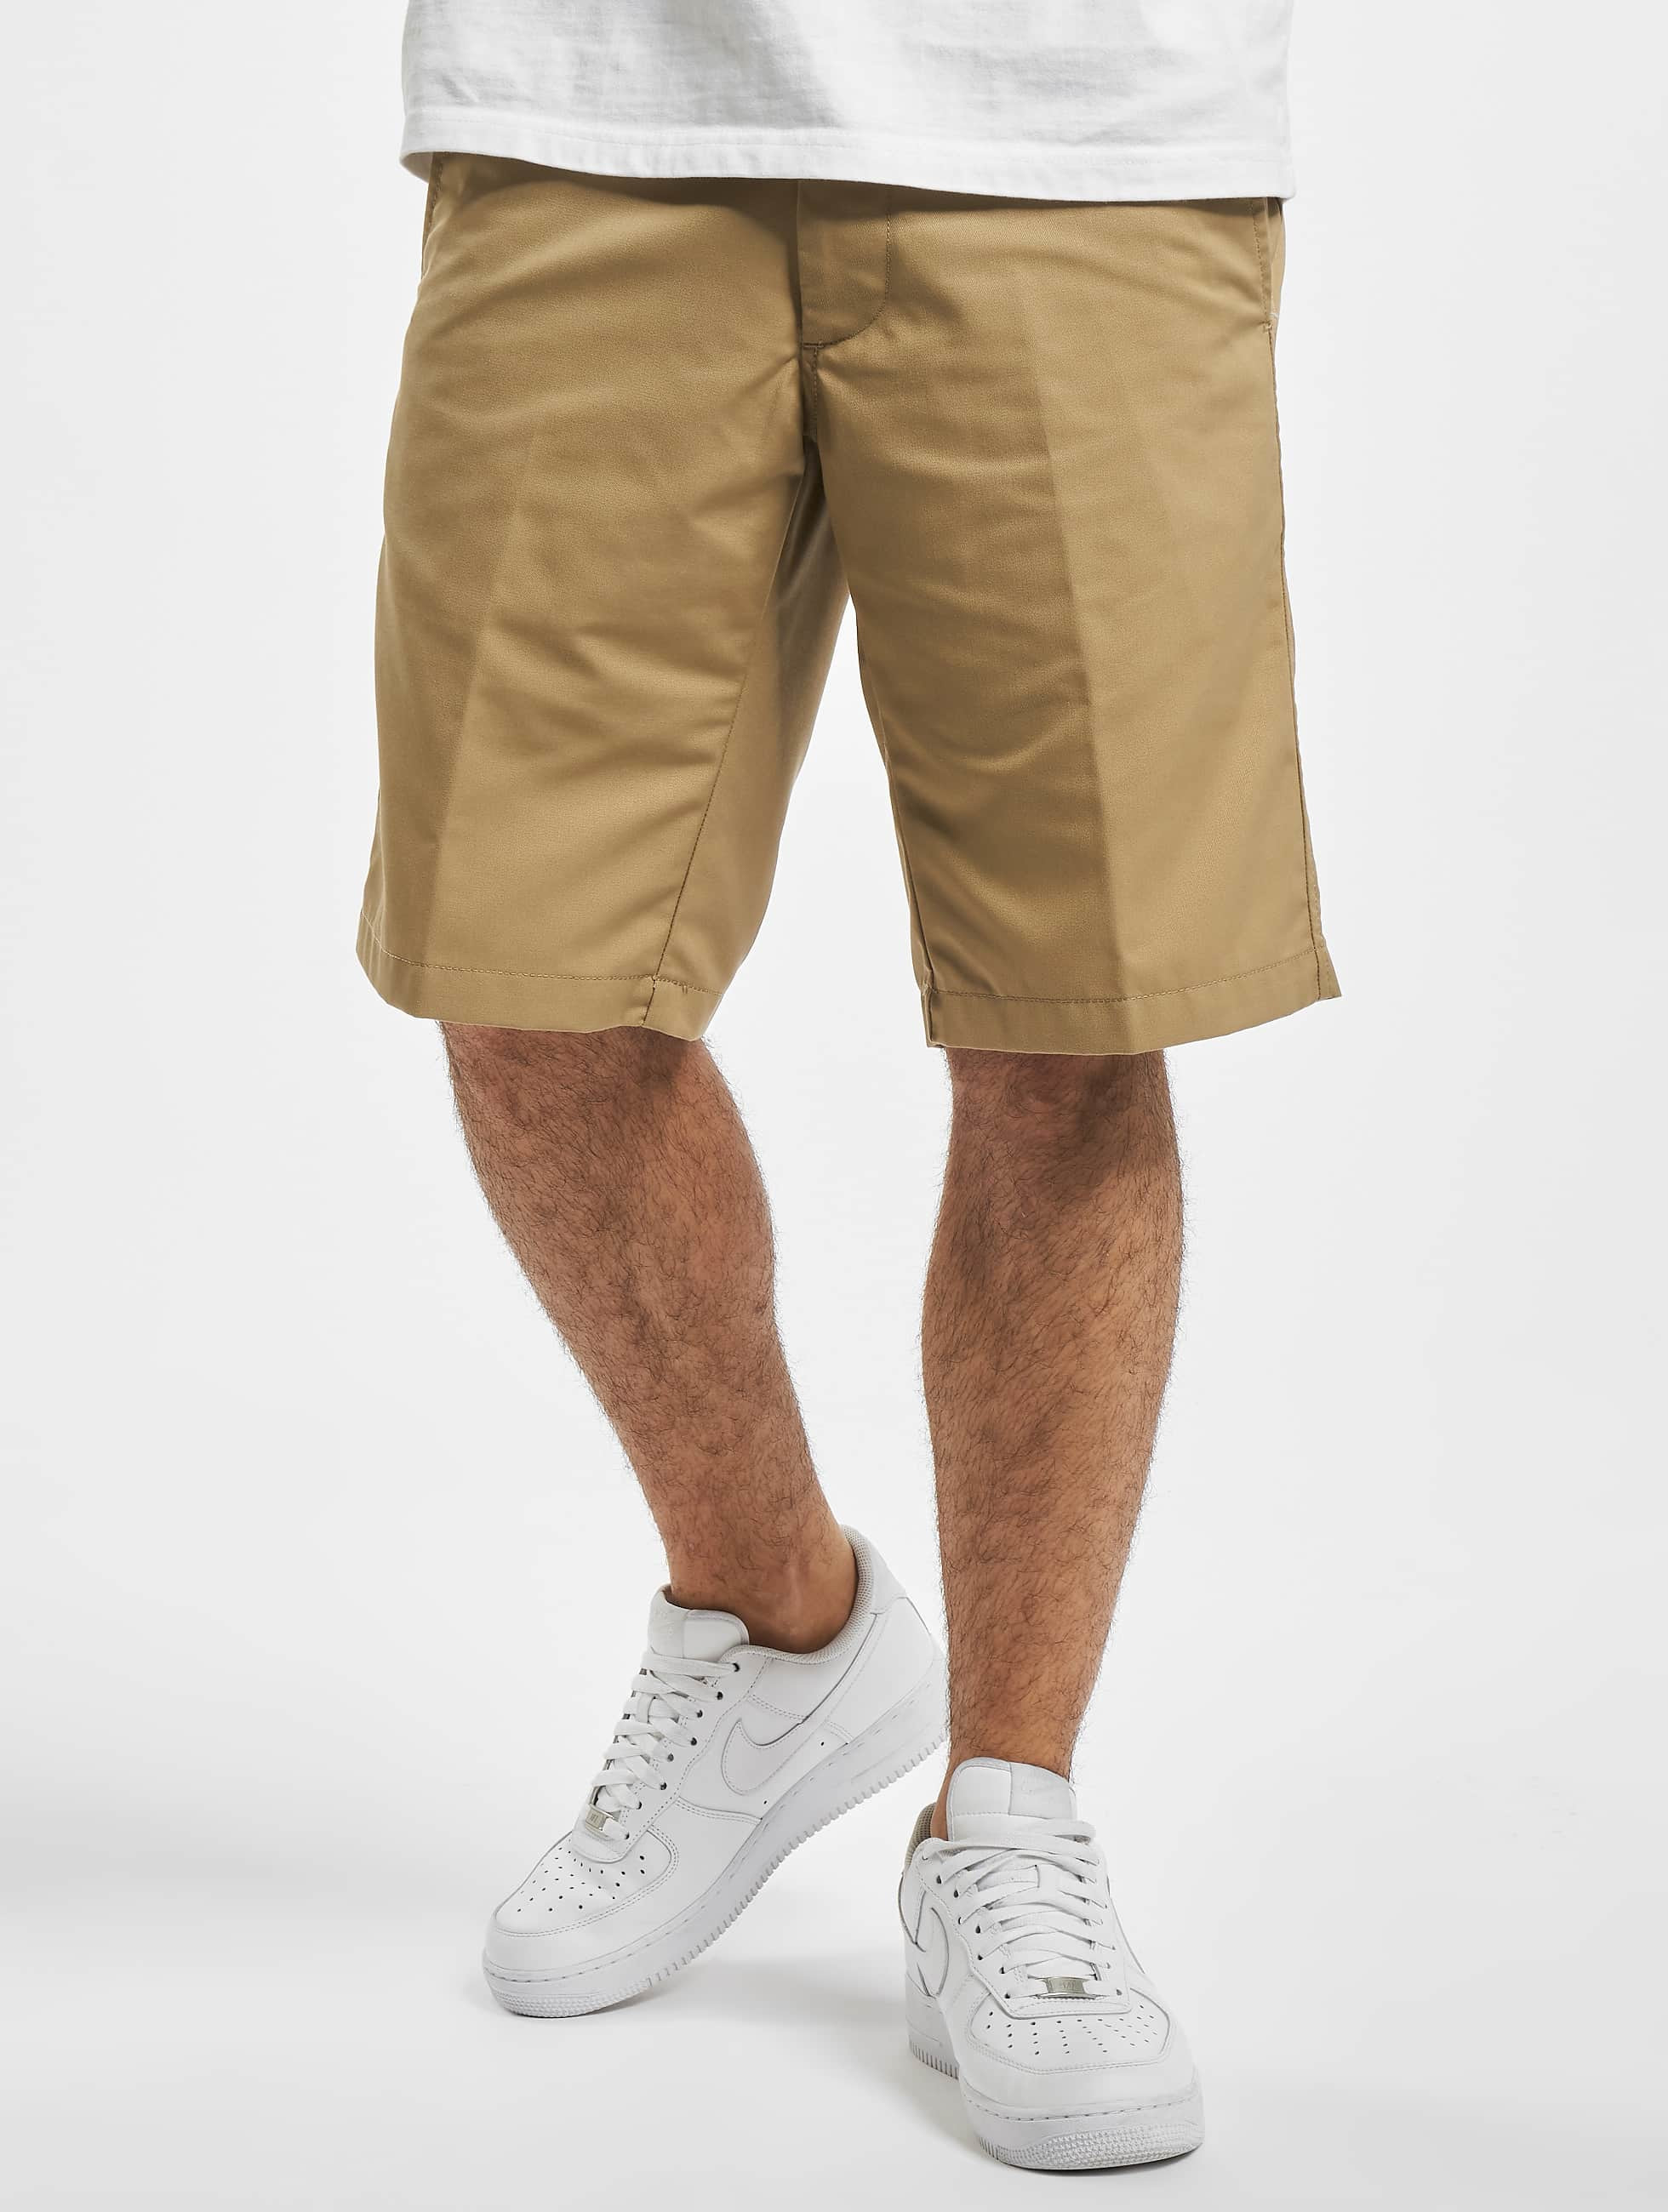 Carhartt WIP Dunmore Presenter Regular Fit Short Leather Rinsed